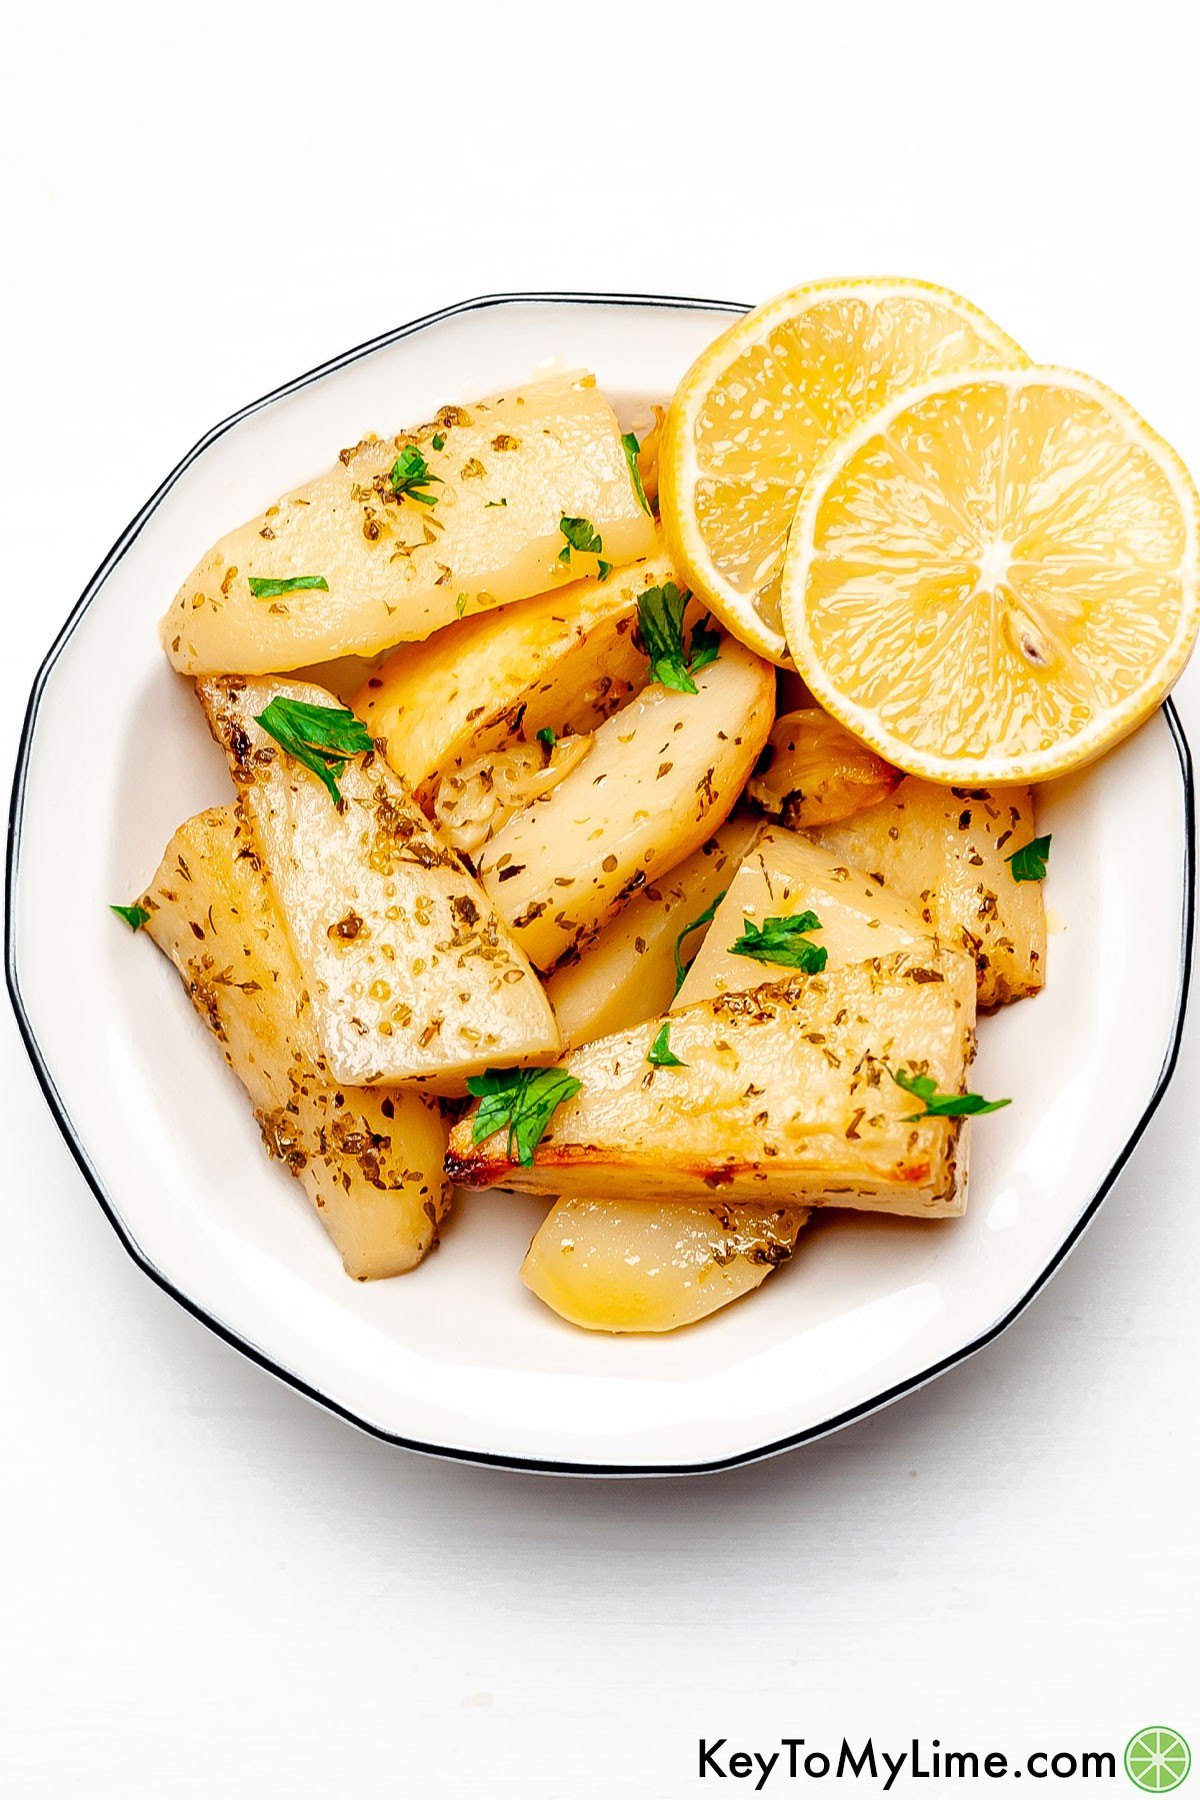 Greek potatoes in a white bowl with a black rim garnished with parsley and lemon slices.